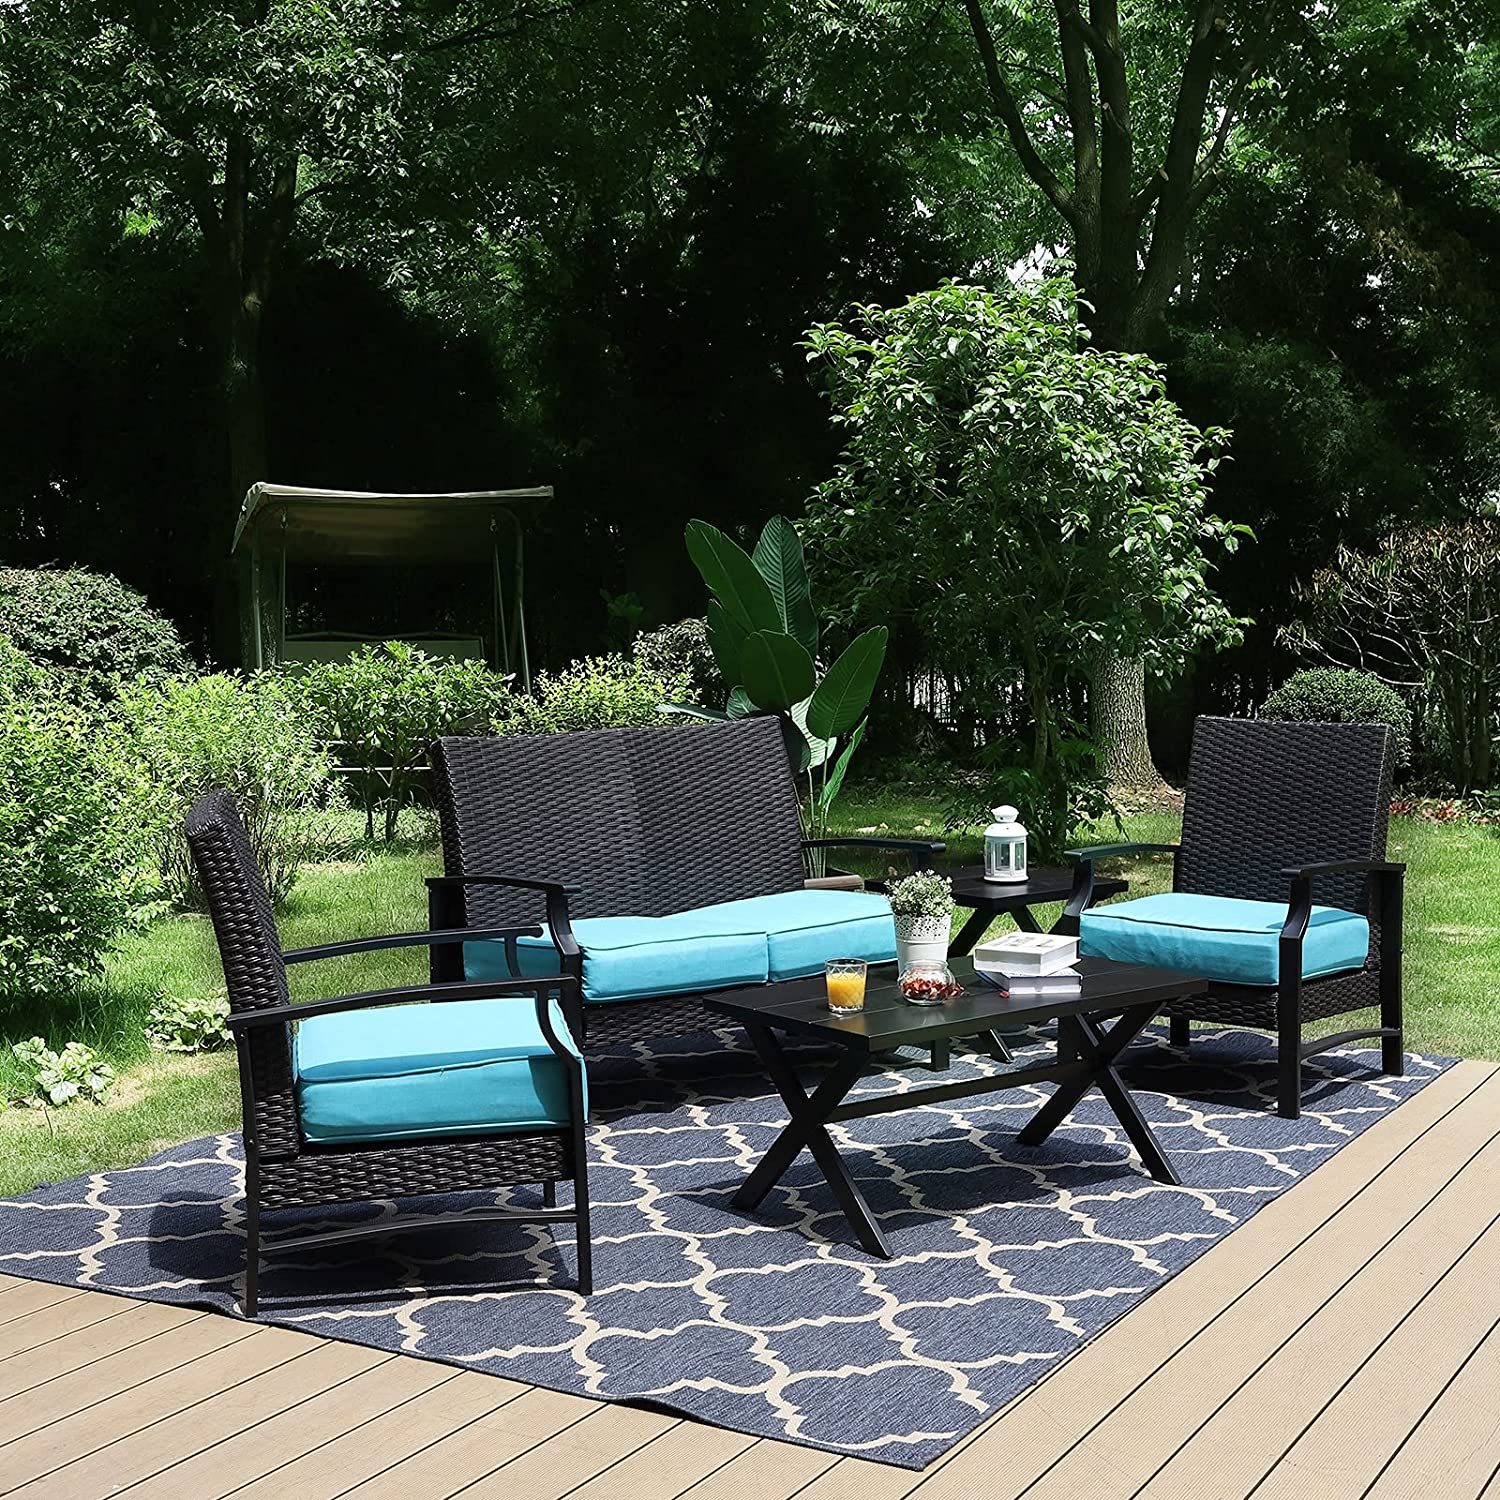 Sophia & William Outdoor Patio Furniture Set Deep Seating Conversation Set with Wicker Rattan Cushioned Loveseat & 2 Armrest Sofa Chairs & 2 Metal Coffee Table (5 Piece, Turquoise)